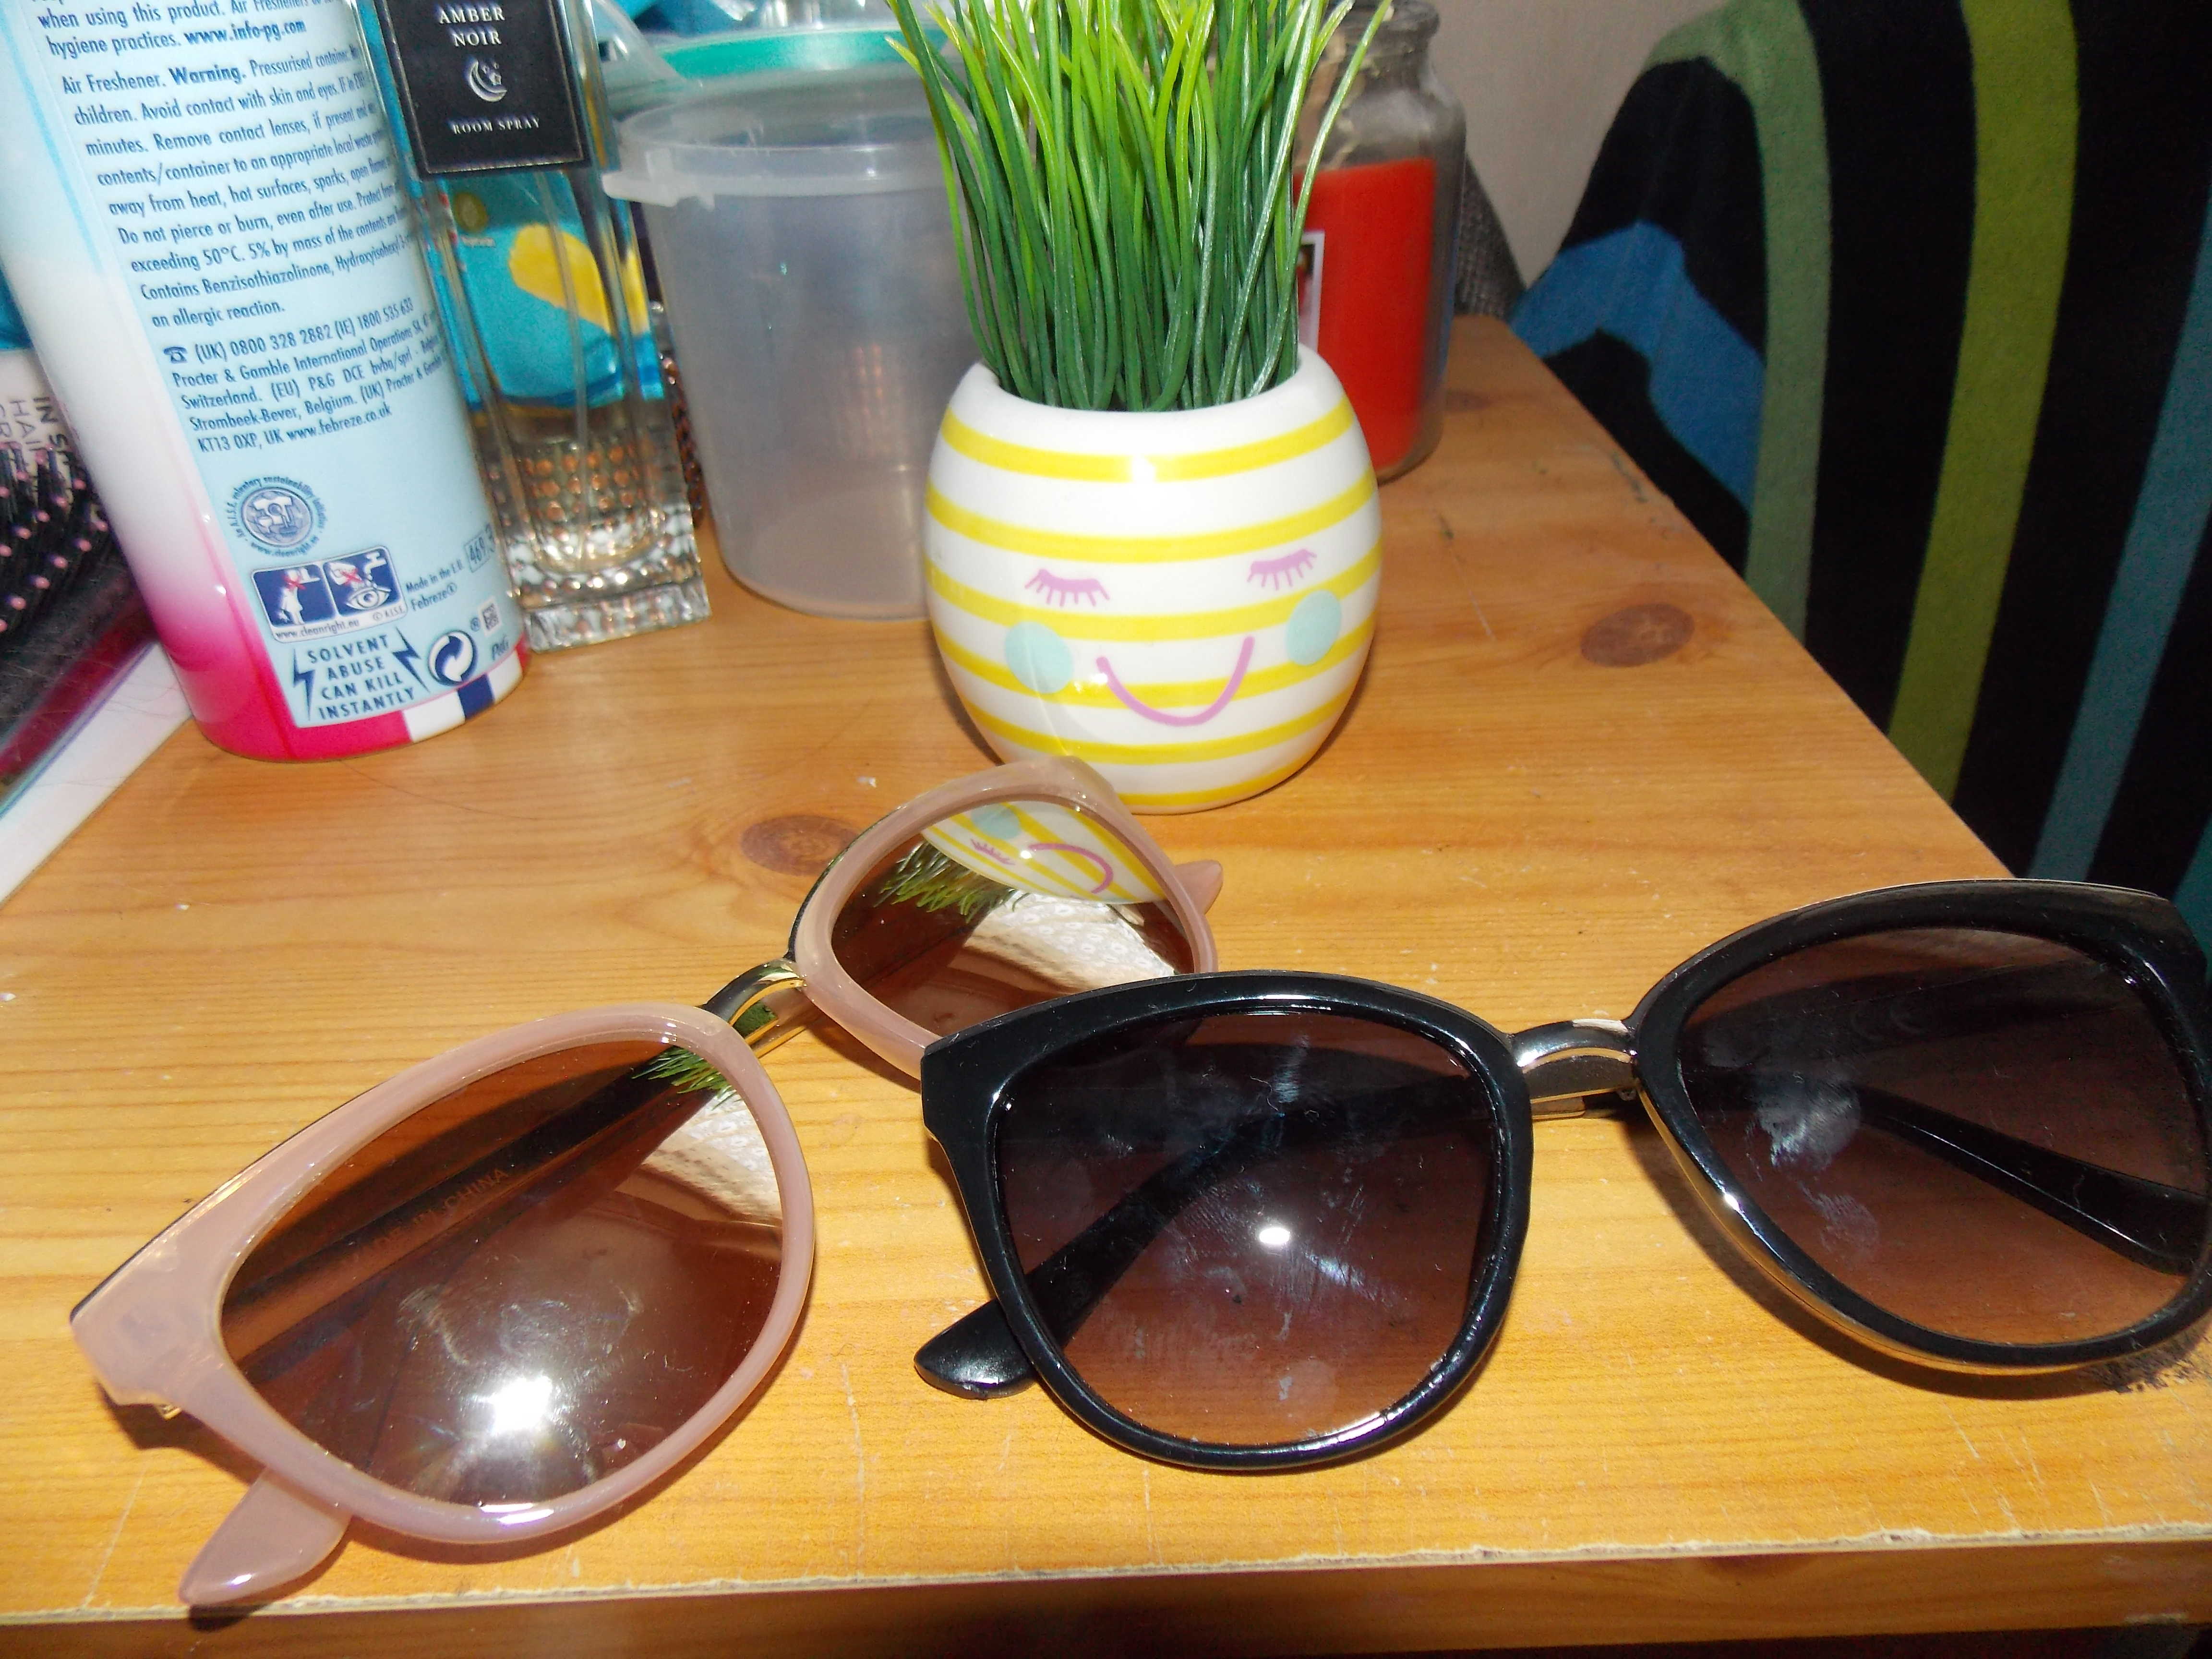 Two pairs of sunglasses. One pair is pink and gold, and the other are black.